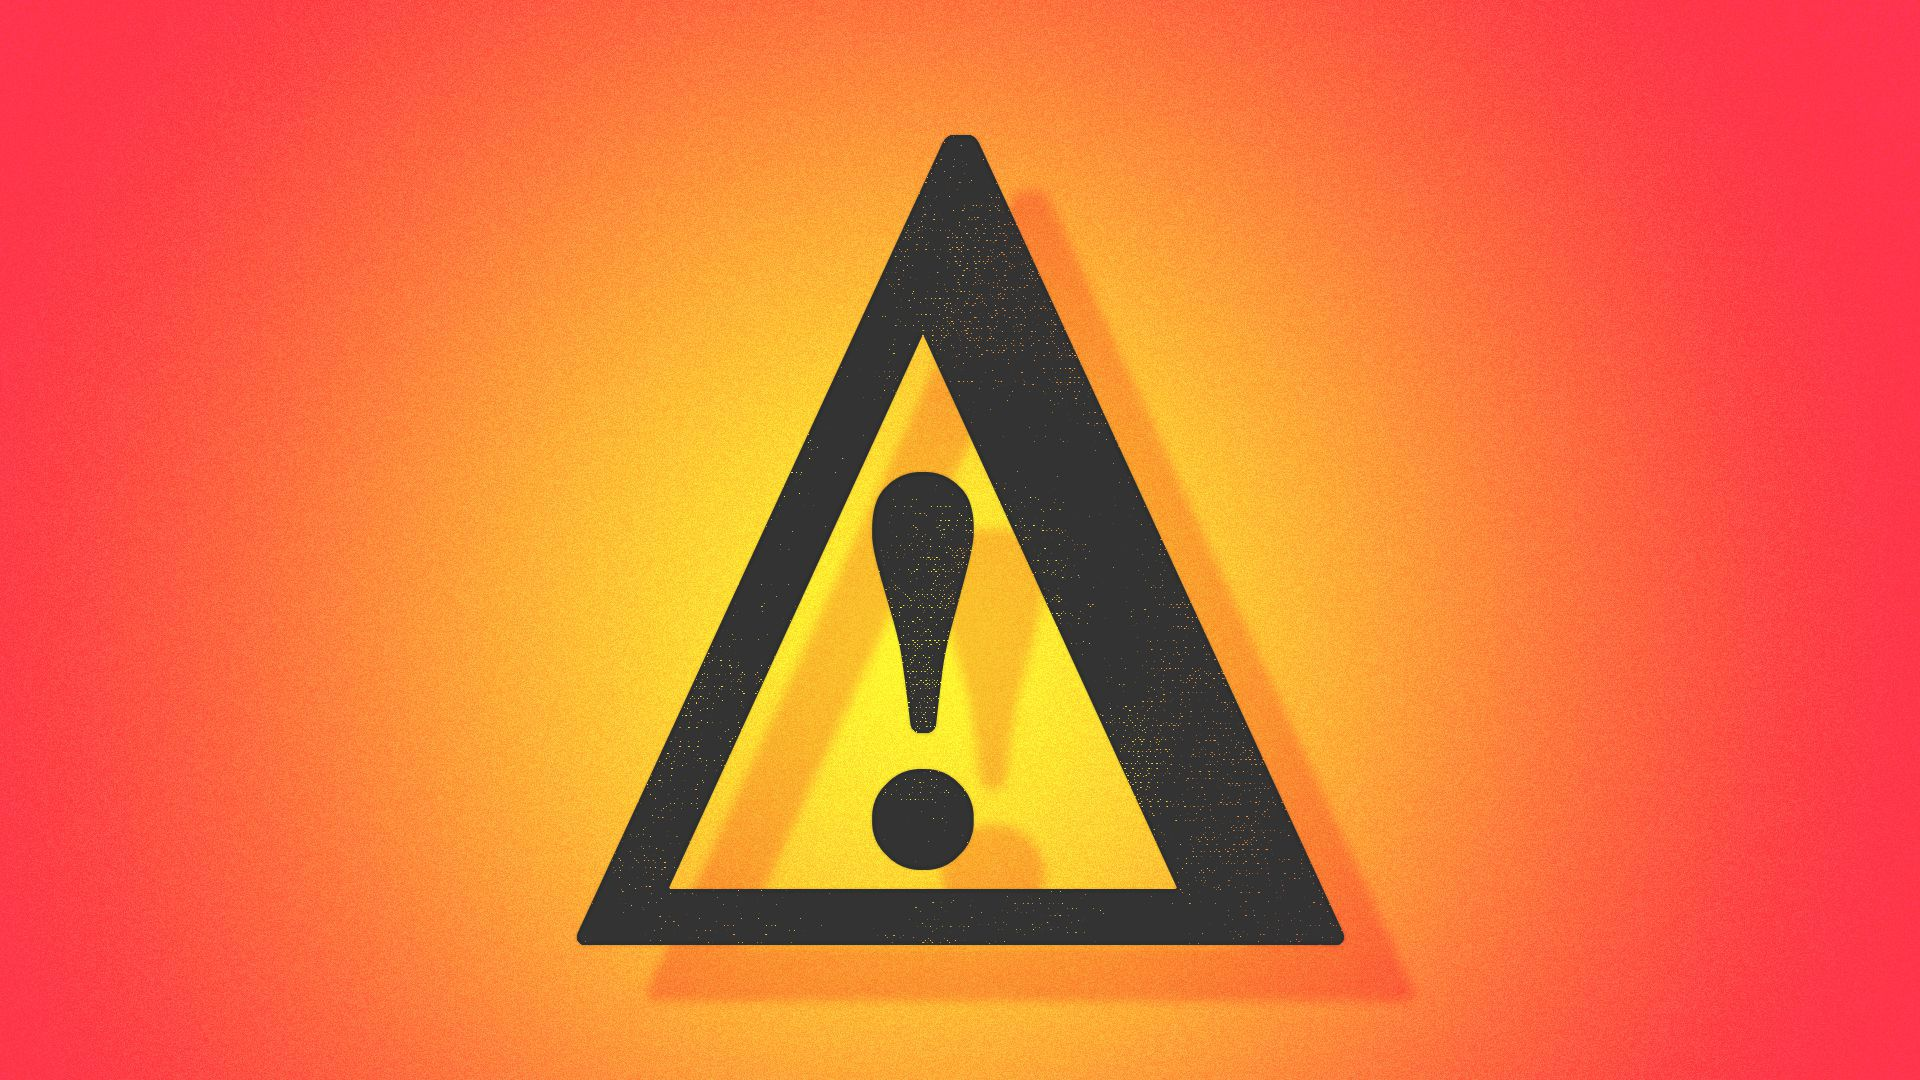 Illustration of a warning sign made of the letter delta and an exclamation point inside it.